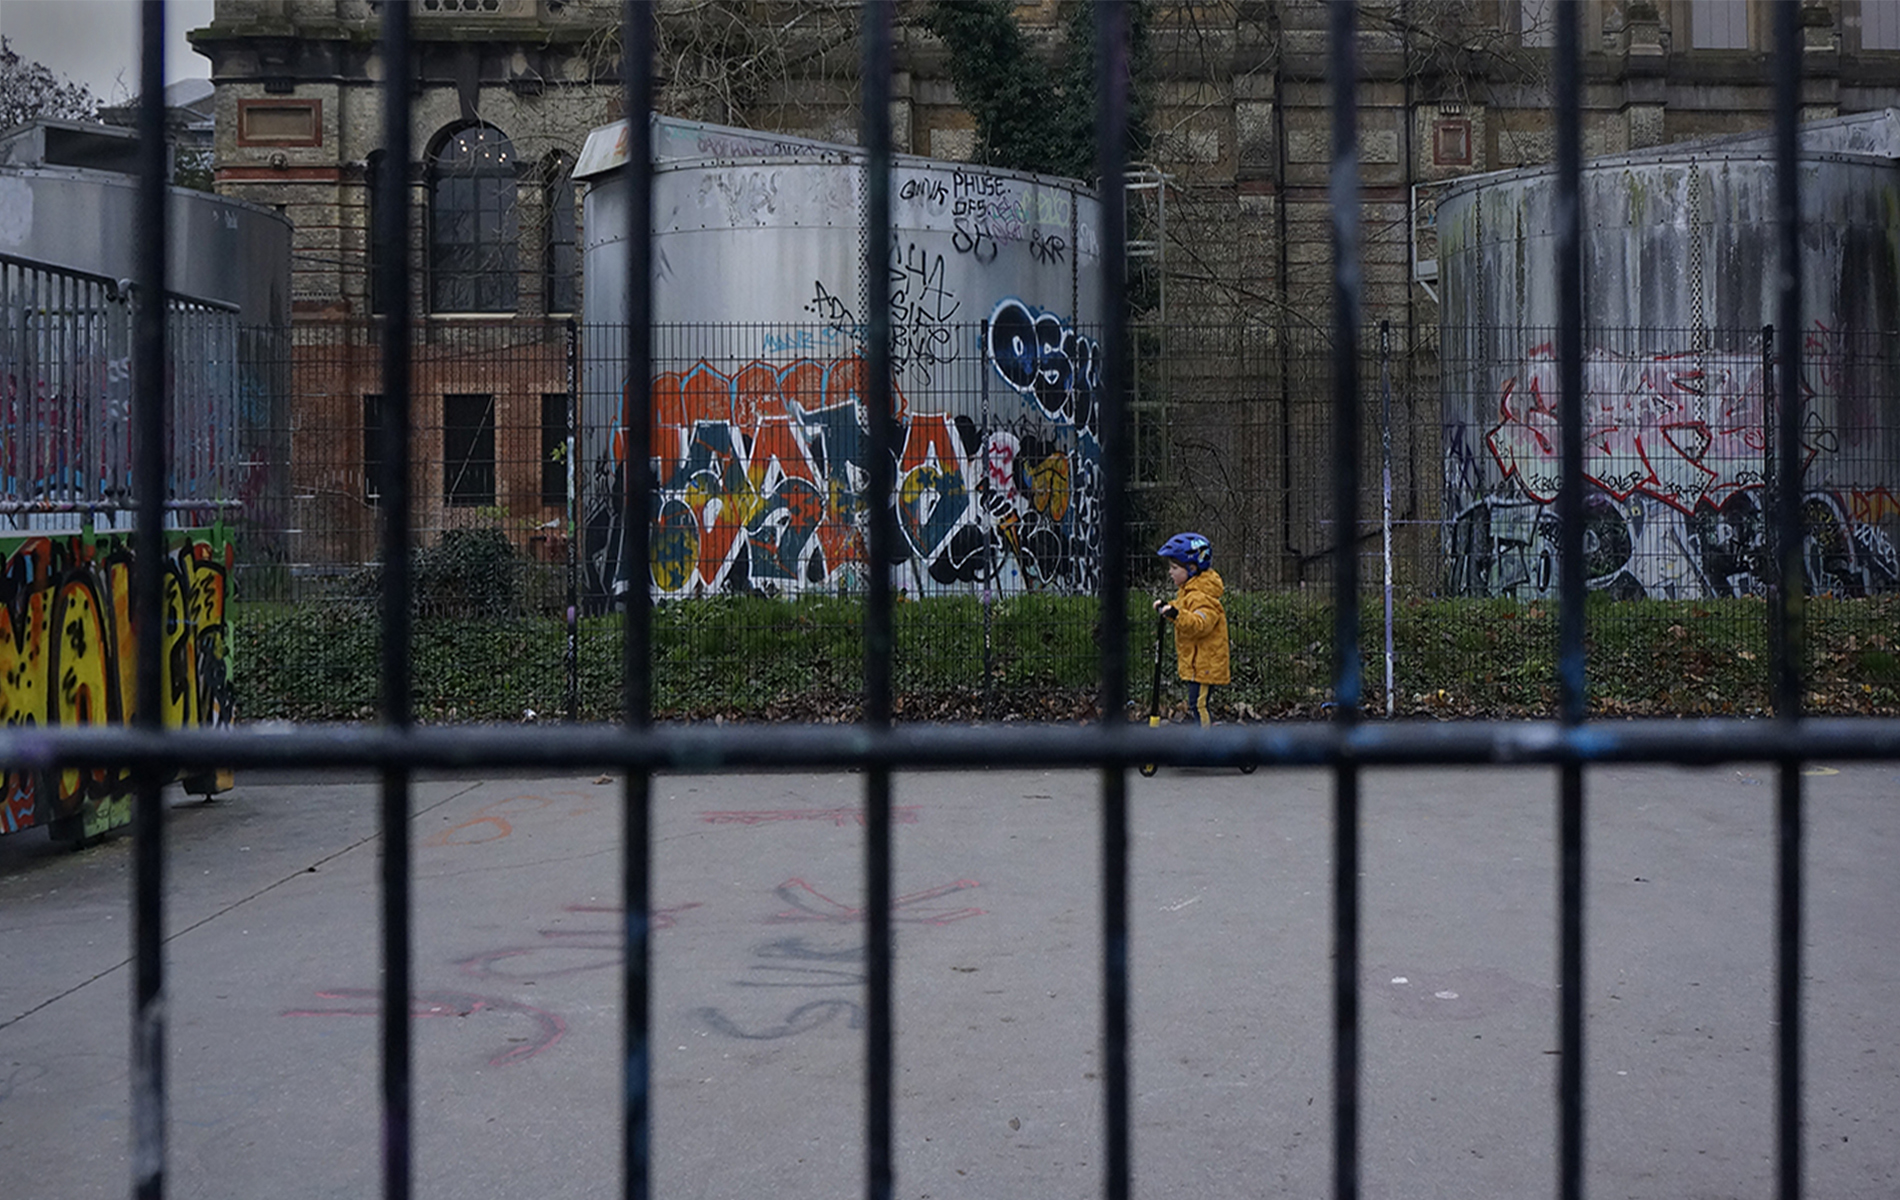 Boy in a cage, Alexandra Palace